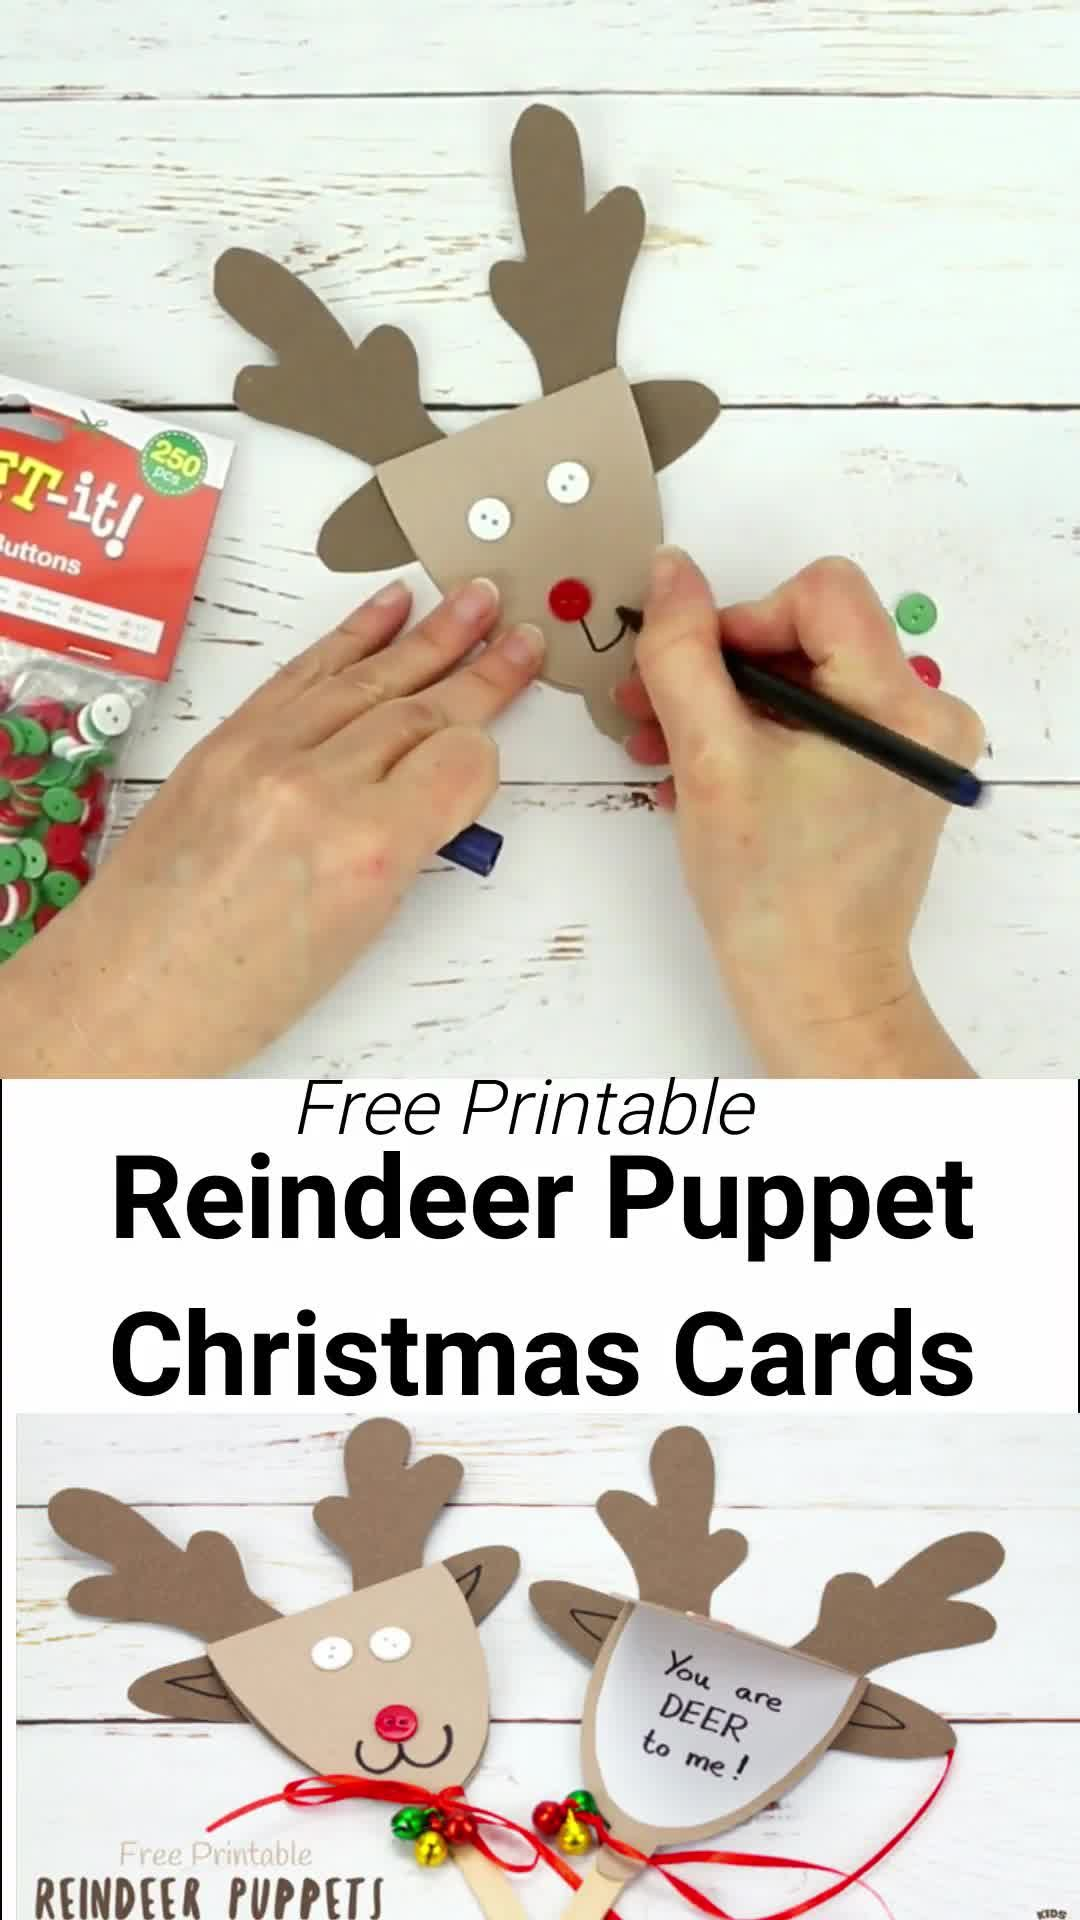 REINDEER PUPPET CHRISTMAS CARDS - These Rudolf Puppets are so fun! This reindeer craft doubles up to be a surprise Christmas card craft so they're perfect for sharing festive cheer to friends and family too! A Christmas craft for kids that they can play with too!  #kidscraftroom #Christmascrafts #Christmascraftideas #kidscrafts #reindeer #Rudolf #reindeercrafts #rudolfcrafts #puppets #puppetcrafts #chistmaspuppets #greetingcards #Christmascards #Christmas